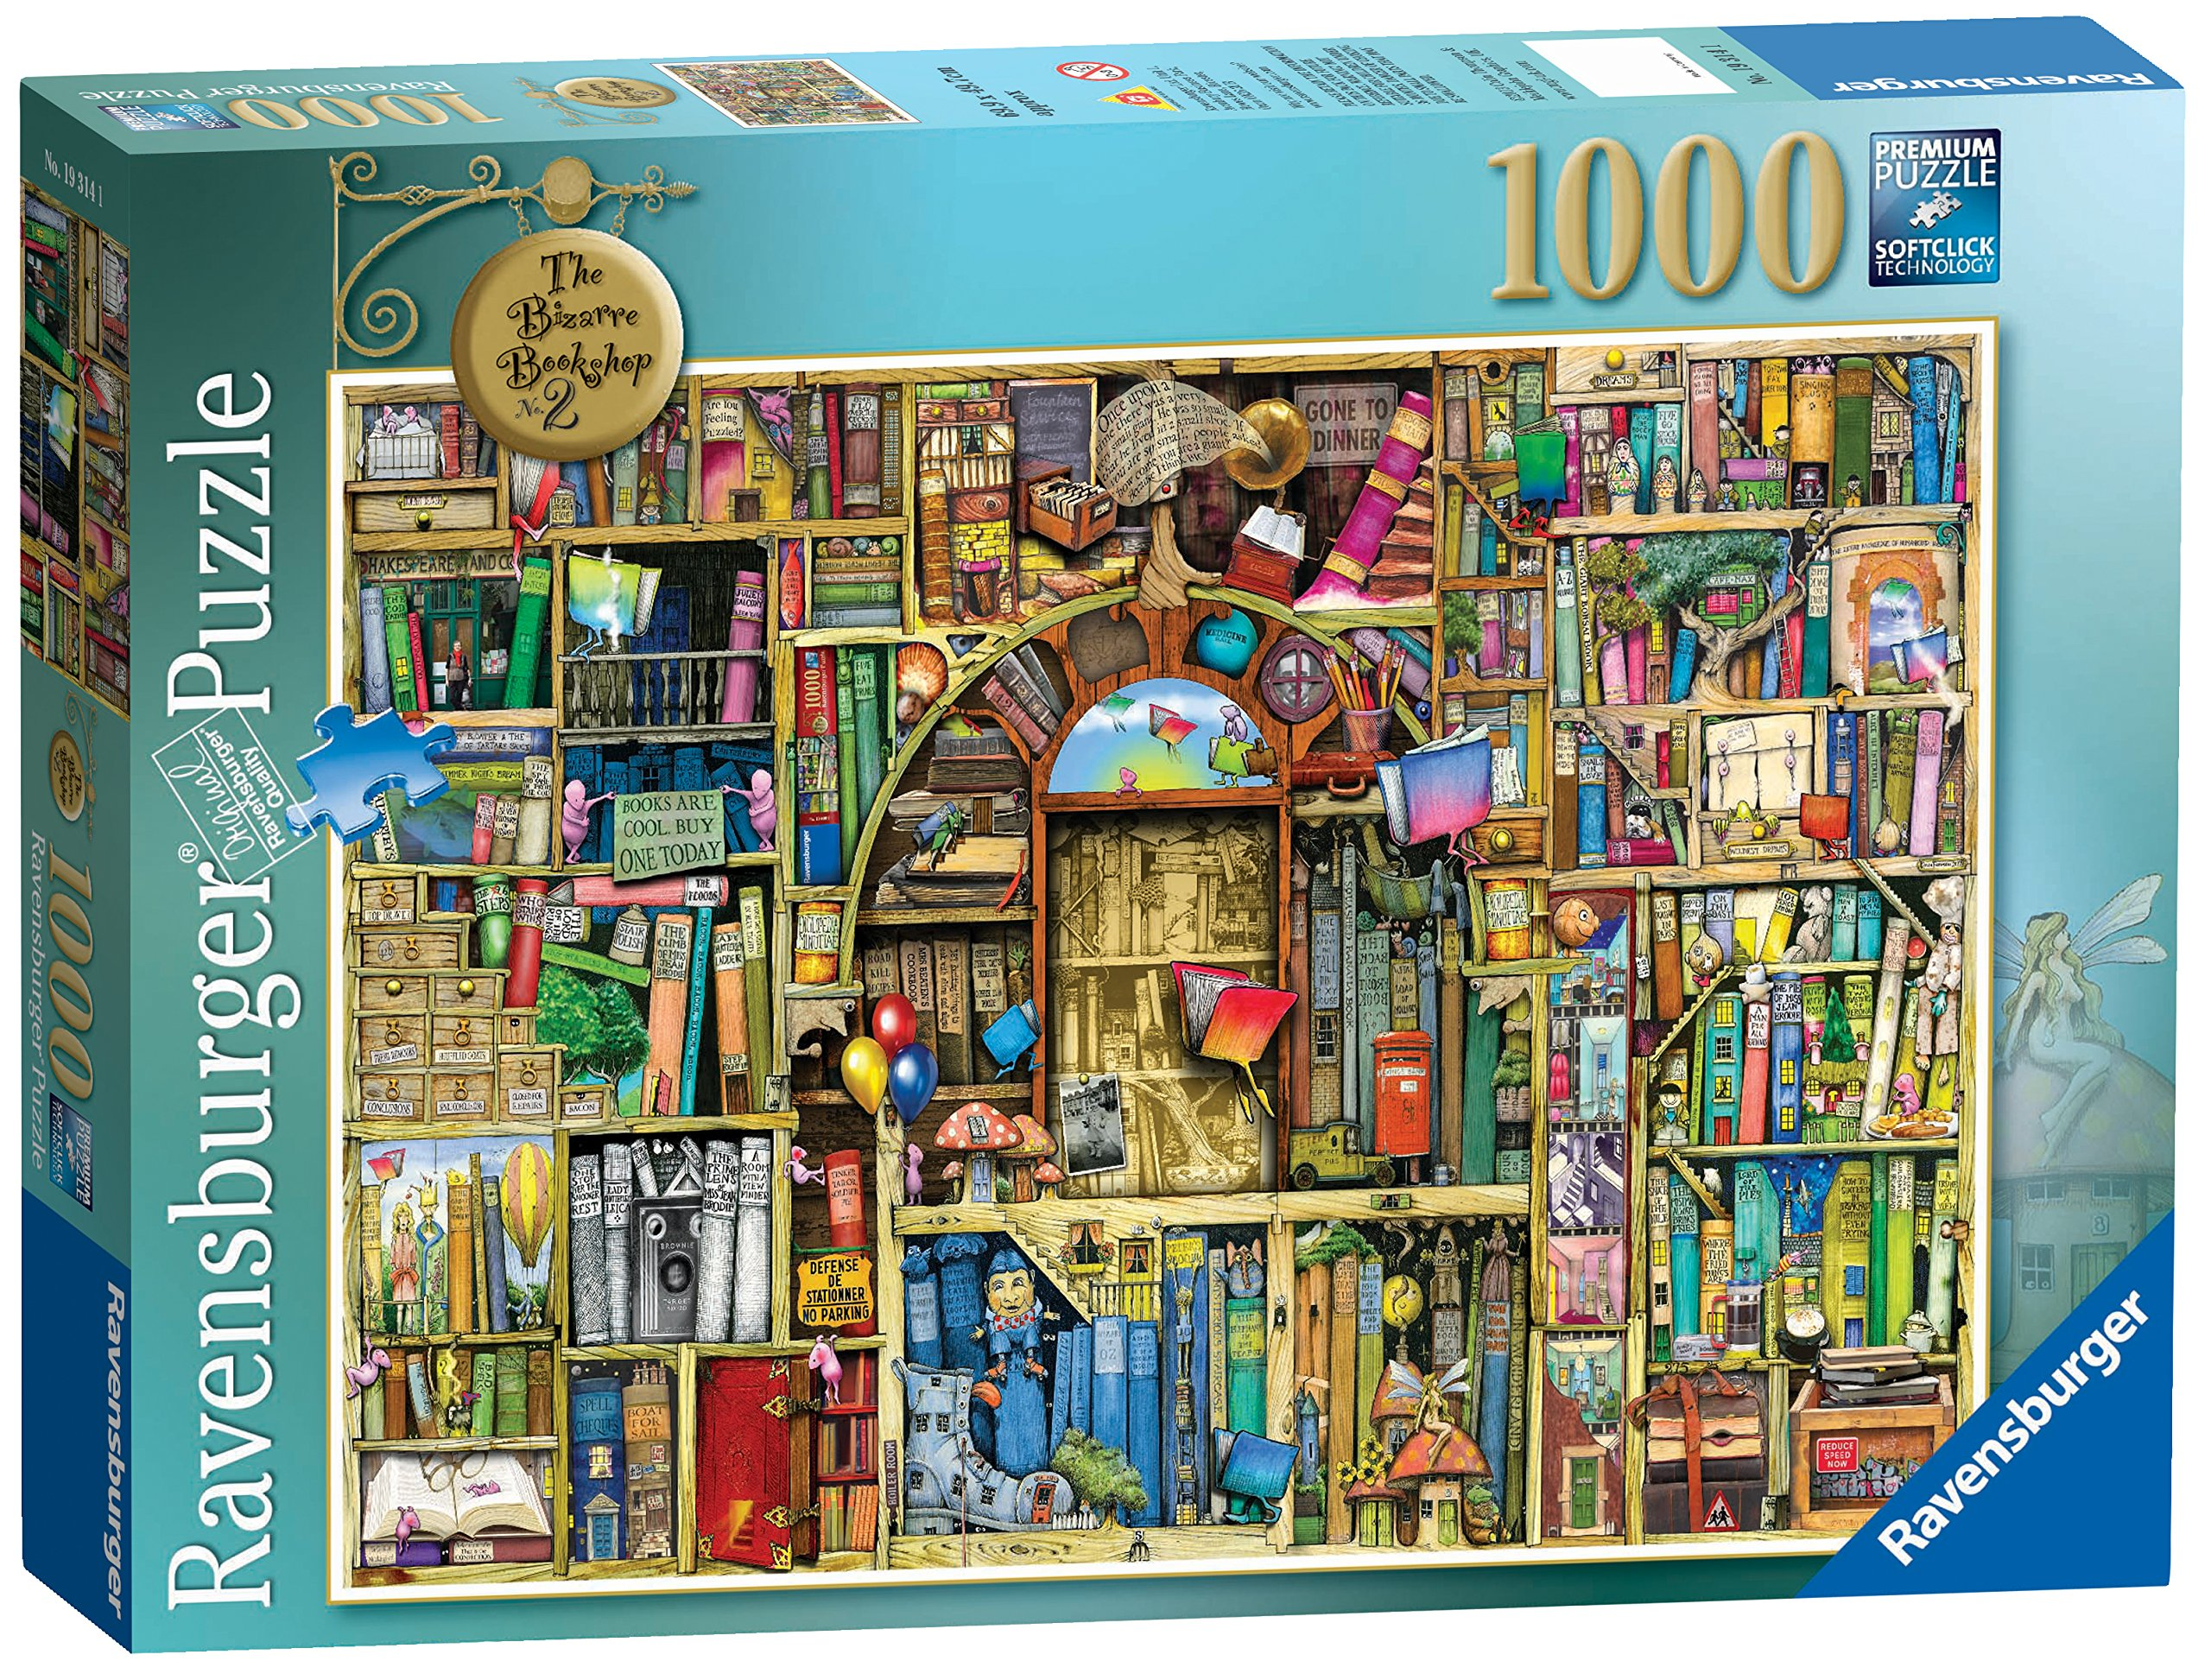 Ravensburger Bizarre Bookshop 2 1000 Piece Jigsaw Puzzle for Adults - Every Piece is Unique, Softclick Technology Means Pieces Fit Together Perfectly by Ravensburger